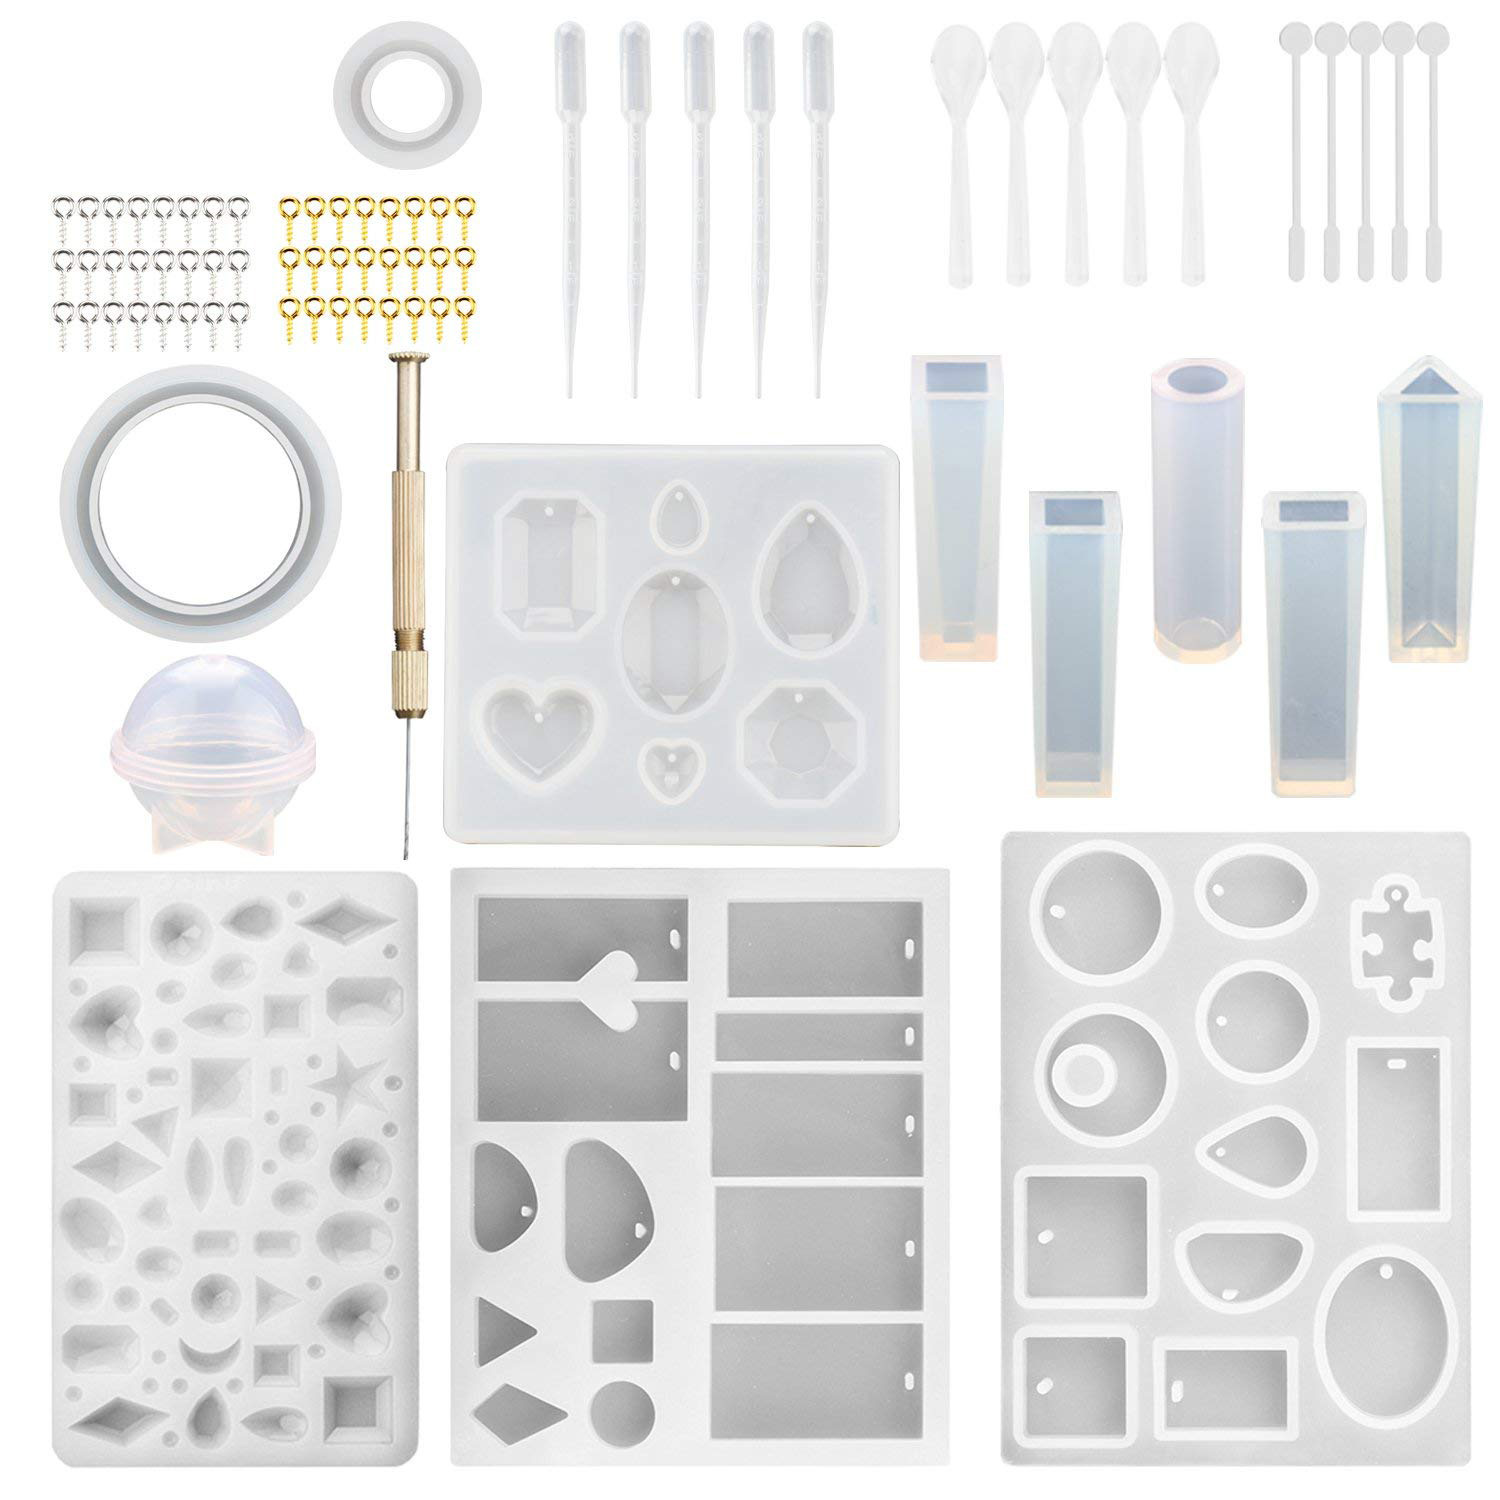 12 Pack Jewelry Casting Molds Silicone Jewelry Molds With 48 Screw Eye Pins,5 Plastic Stirrers,5 Plastic Spoons,5 Plastic Drop